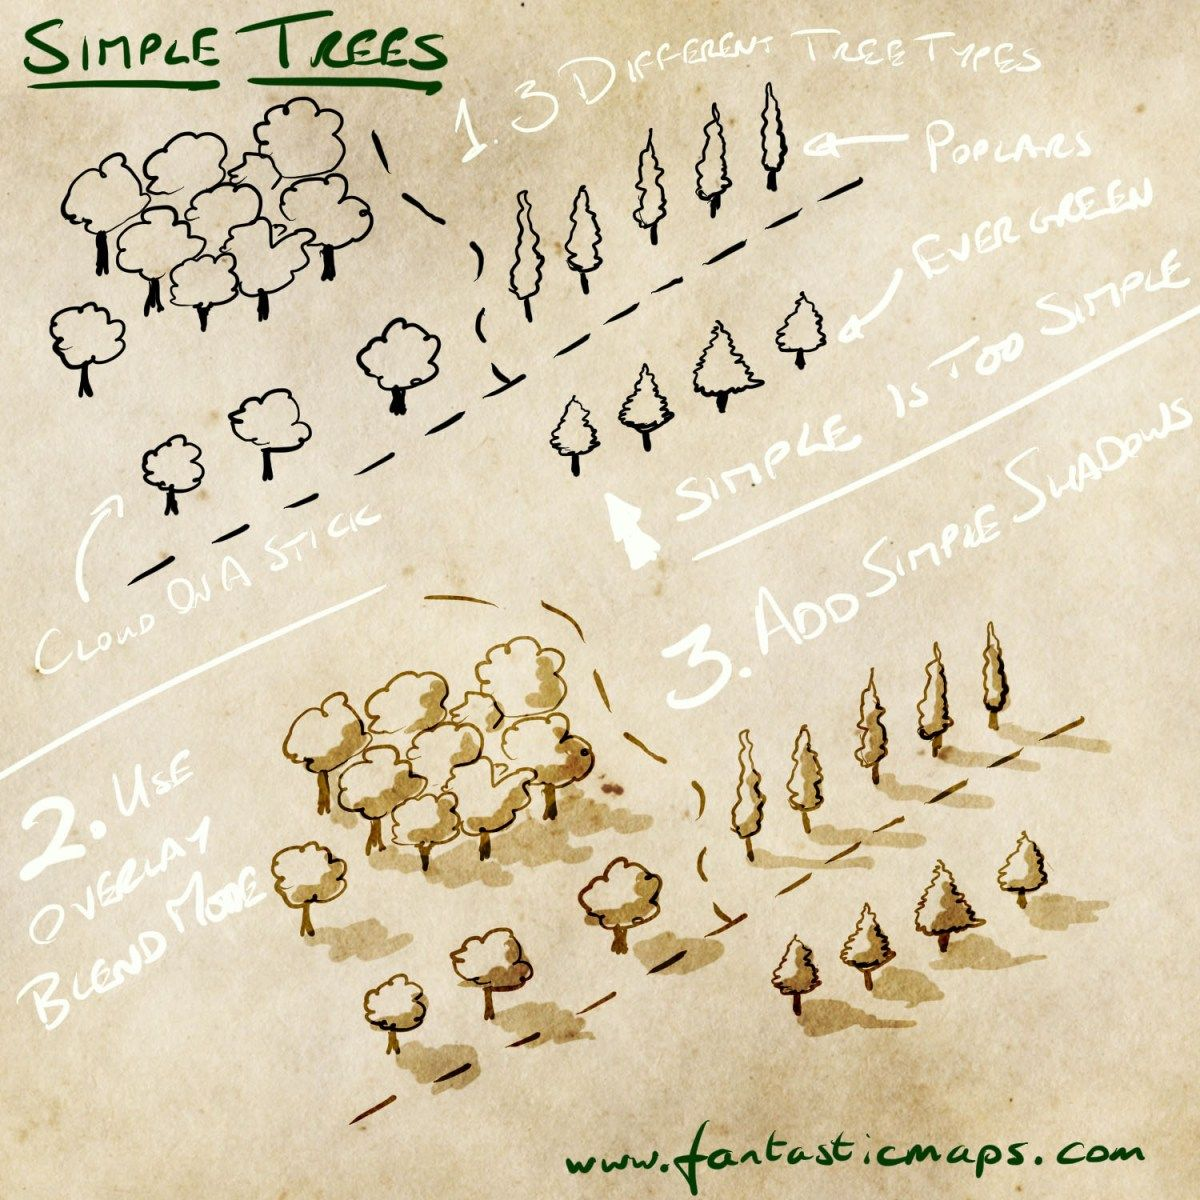 How To Draw Simple Trees On A Map Fantasy Map Making Map Sketch